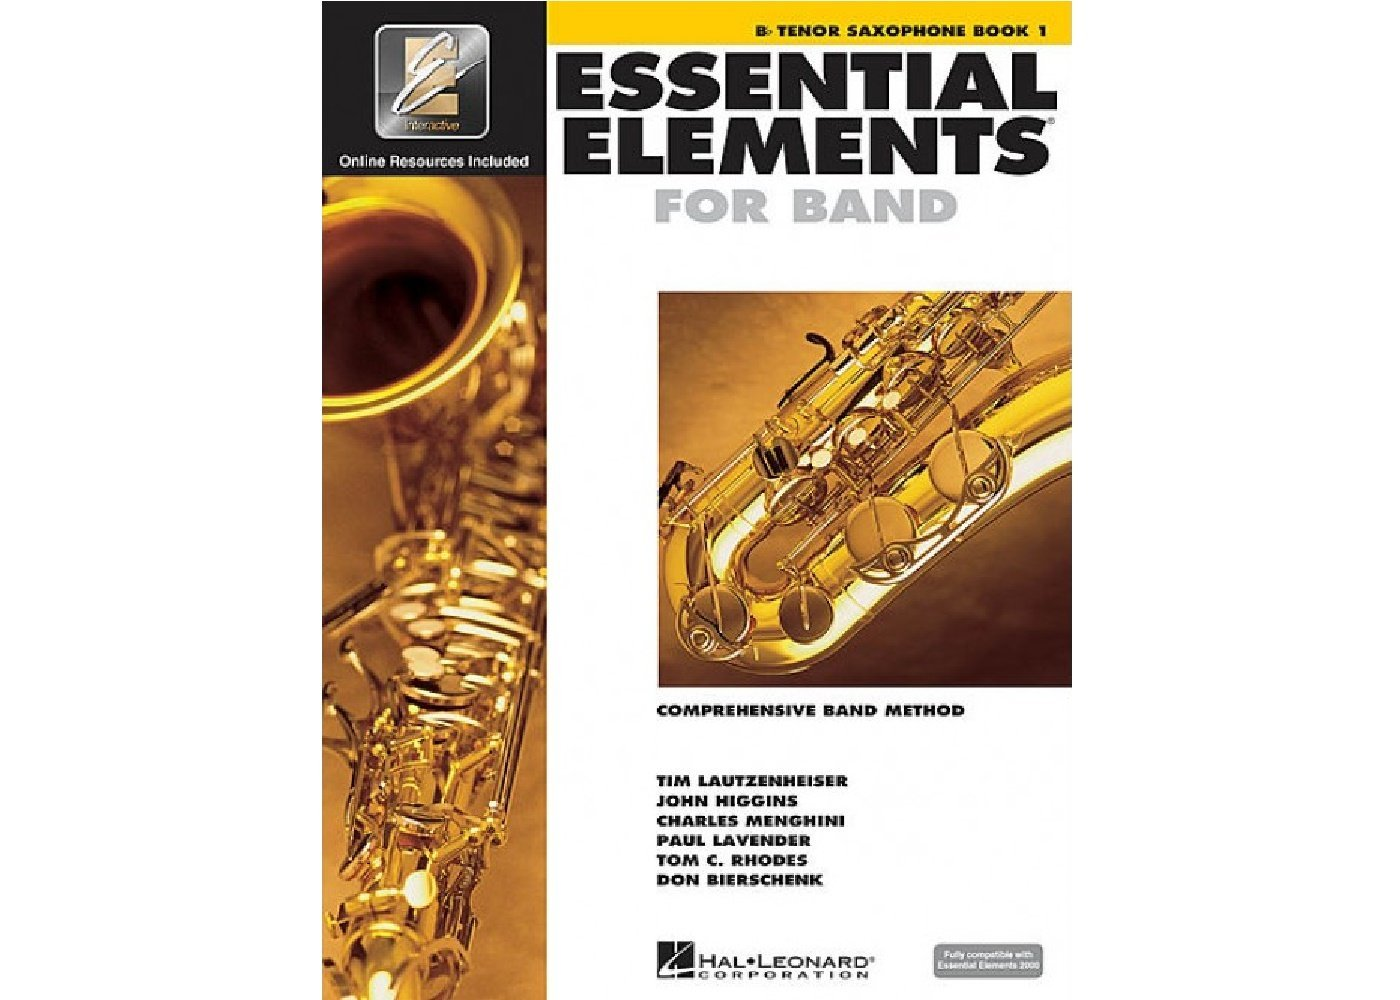 Essential Elements for Band Tenor Sax book 1